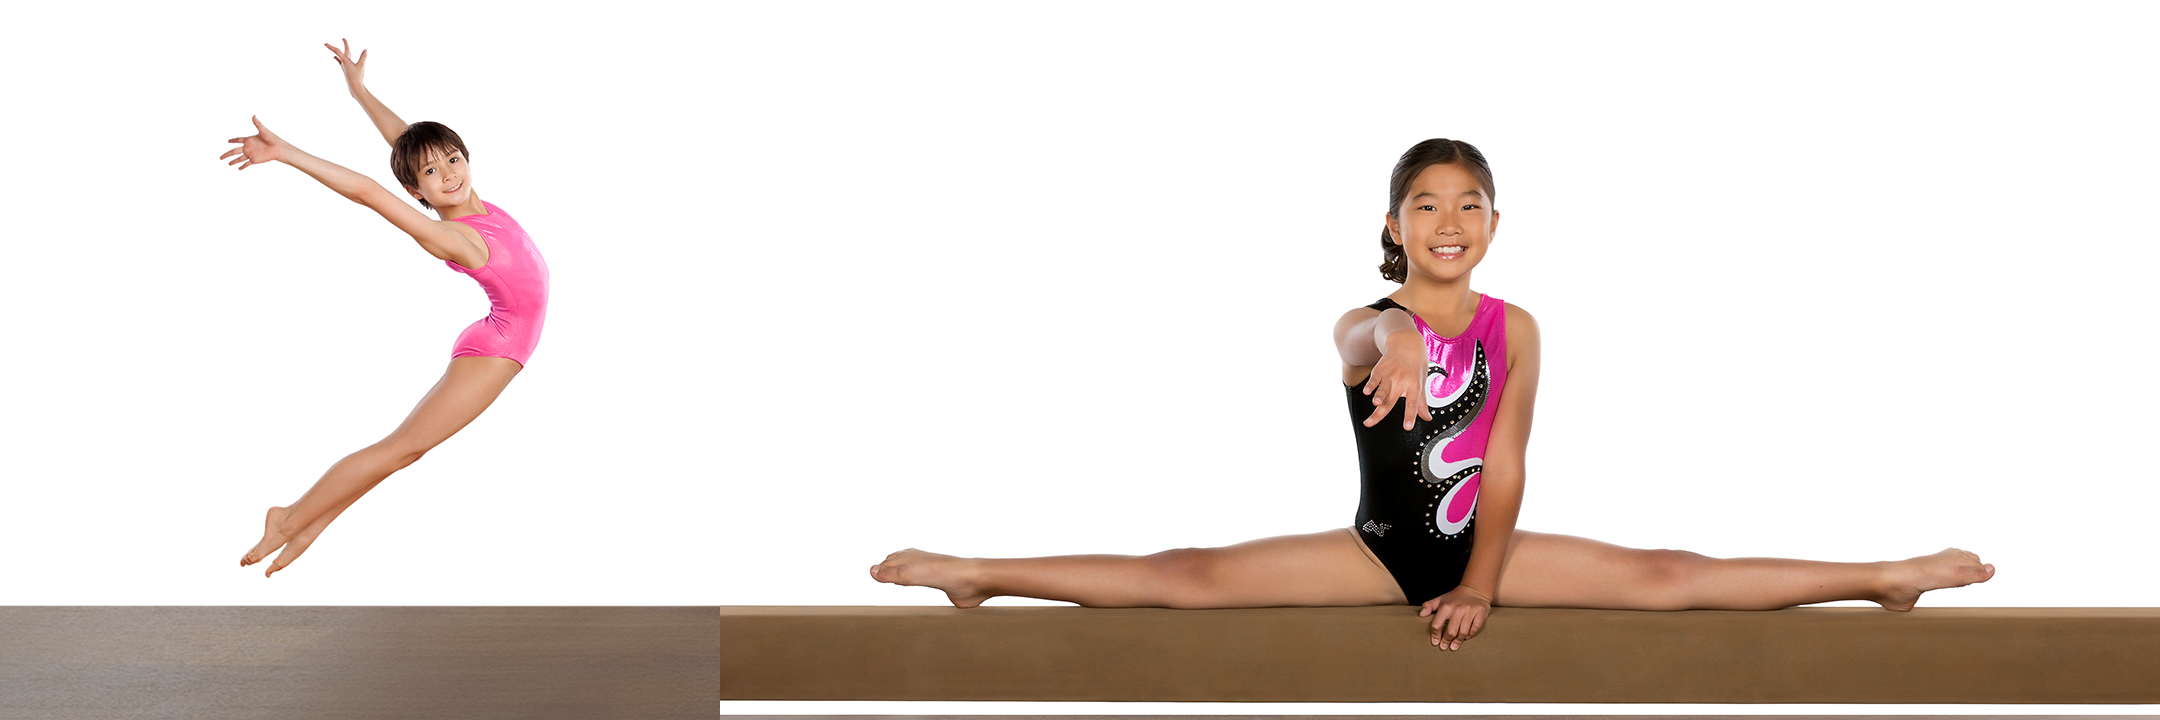 competitive-gymnastics-photography-11